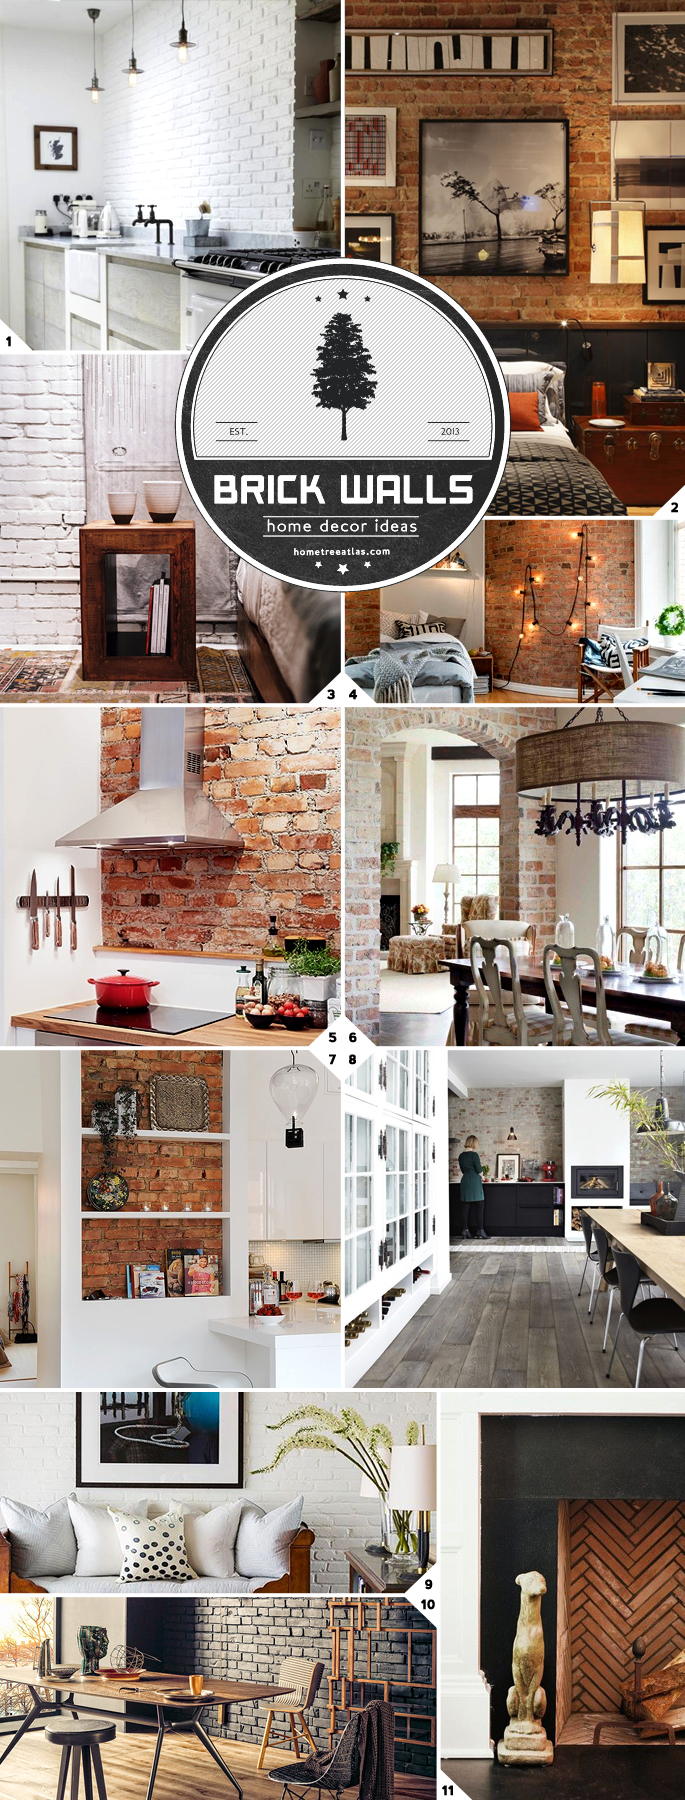 Industrial and Rustic Charm Home Brick Wall Designs